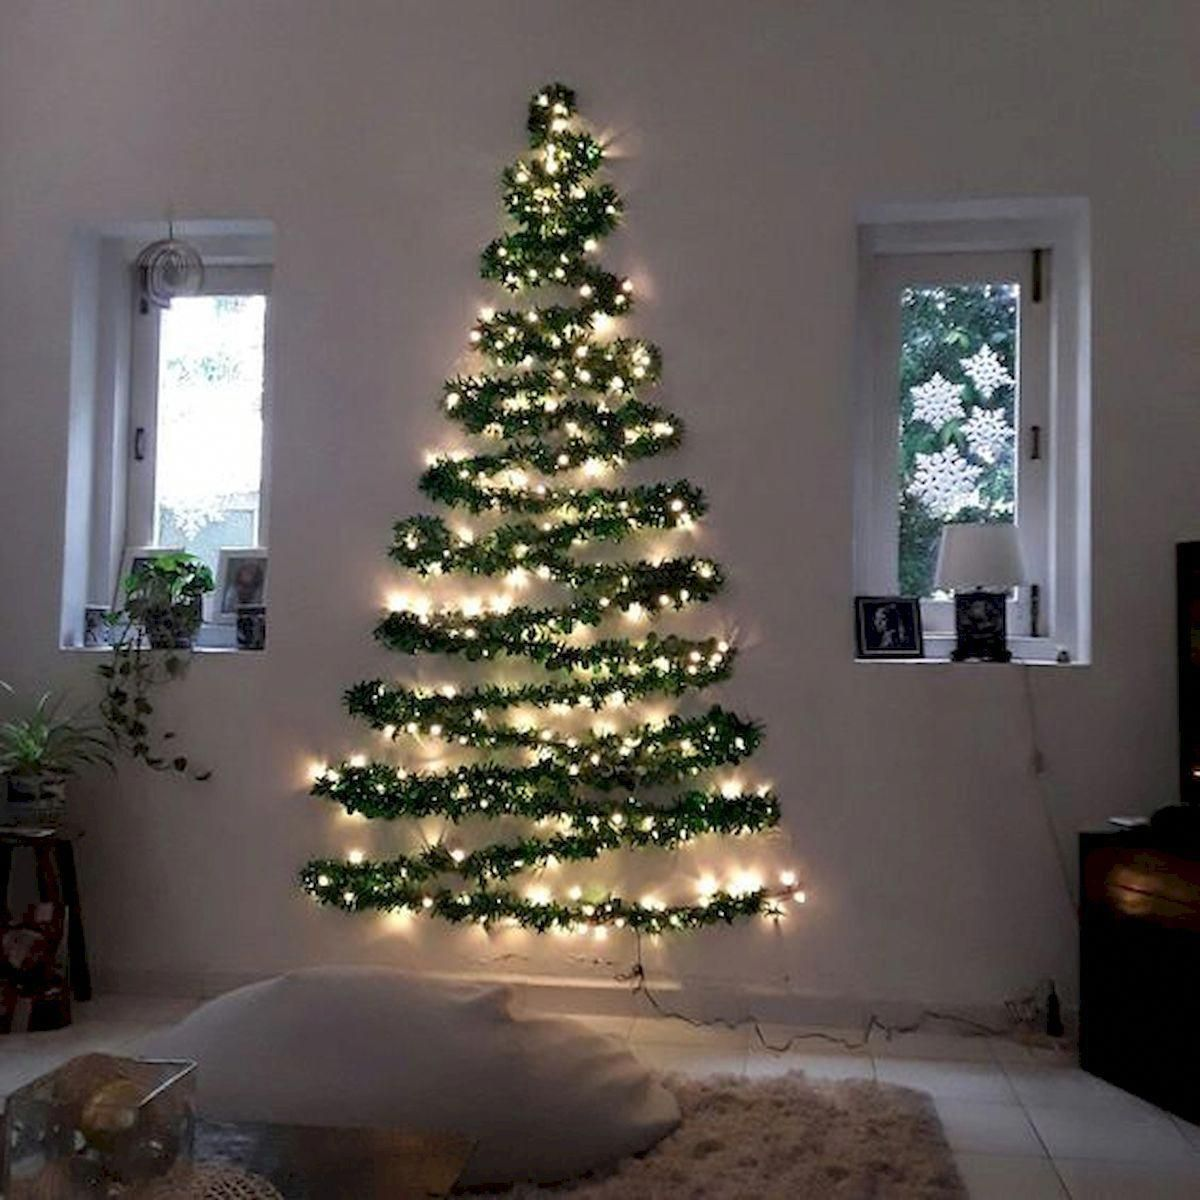 Christmas Ideas For Restaurants Christmas Present Ideas For Family And Friends Creative Christmas Trees Christmas Decorations Apartment Wall Christmas Tree